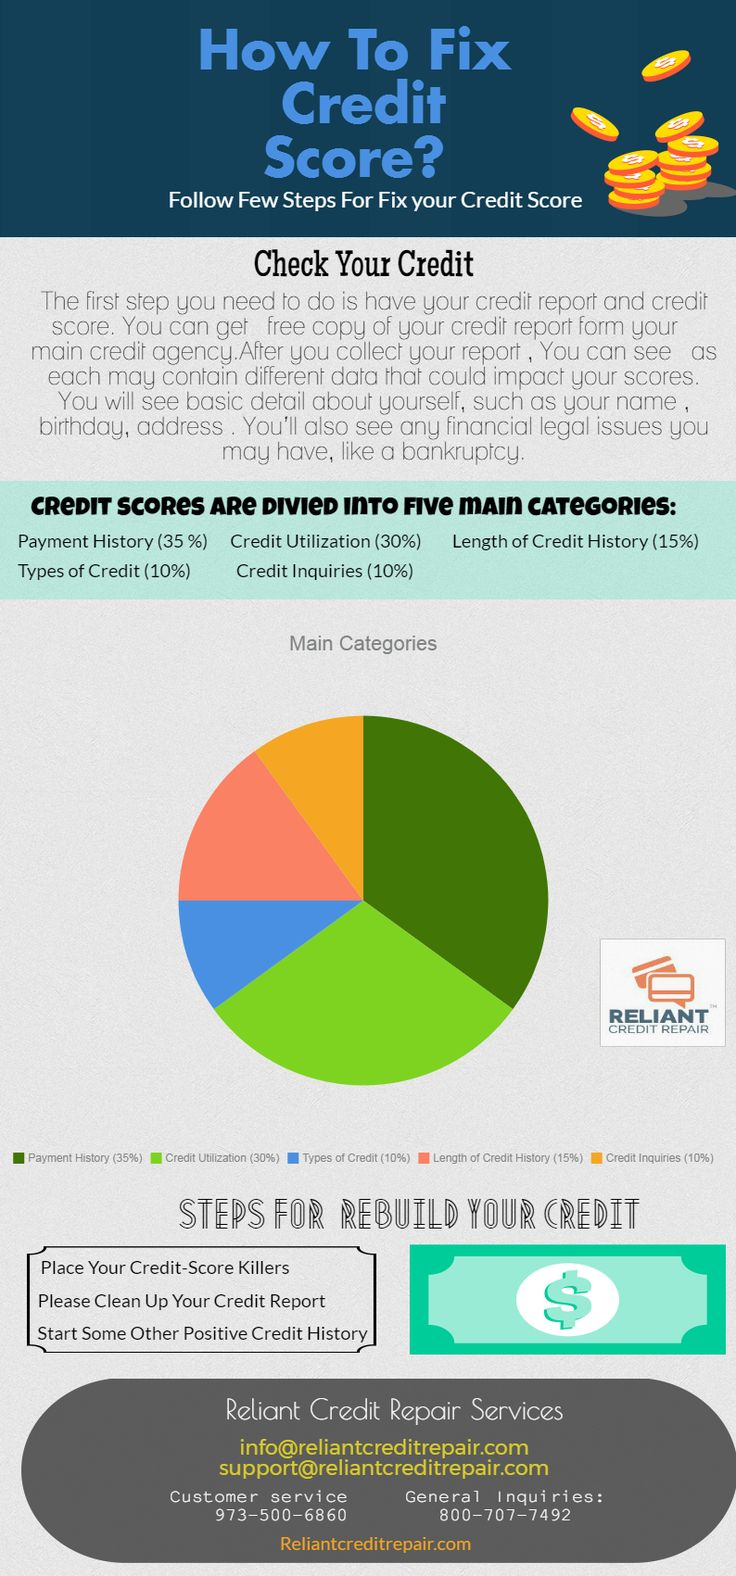 All you need to know about how to fix your credit score to avoid bad credit consider browsing reliant credit repair and know in detail about it